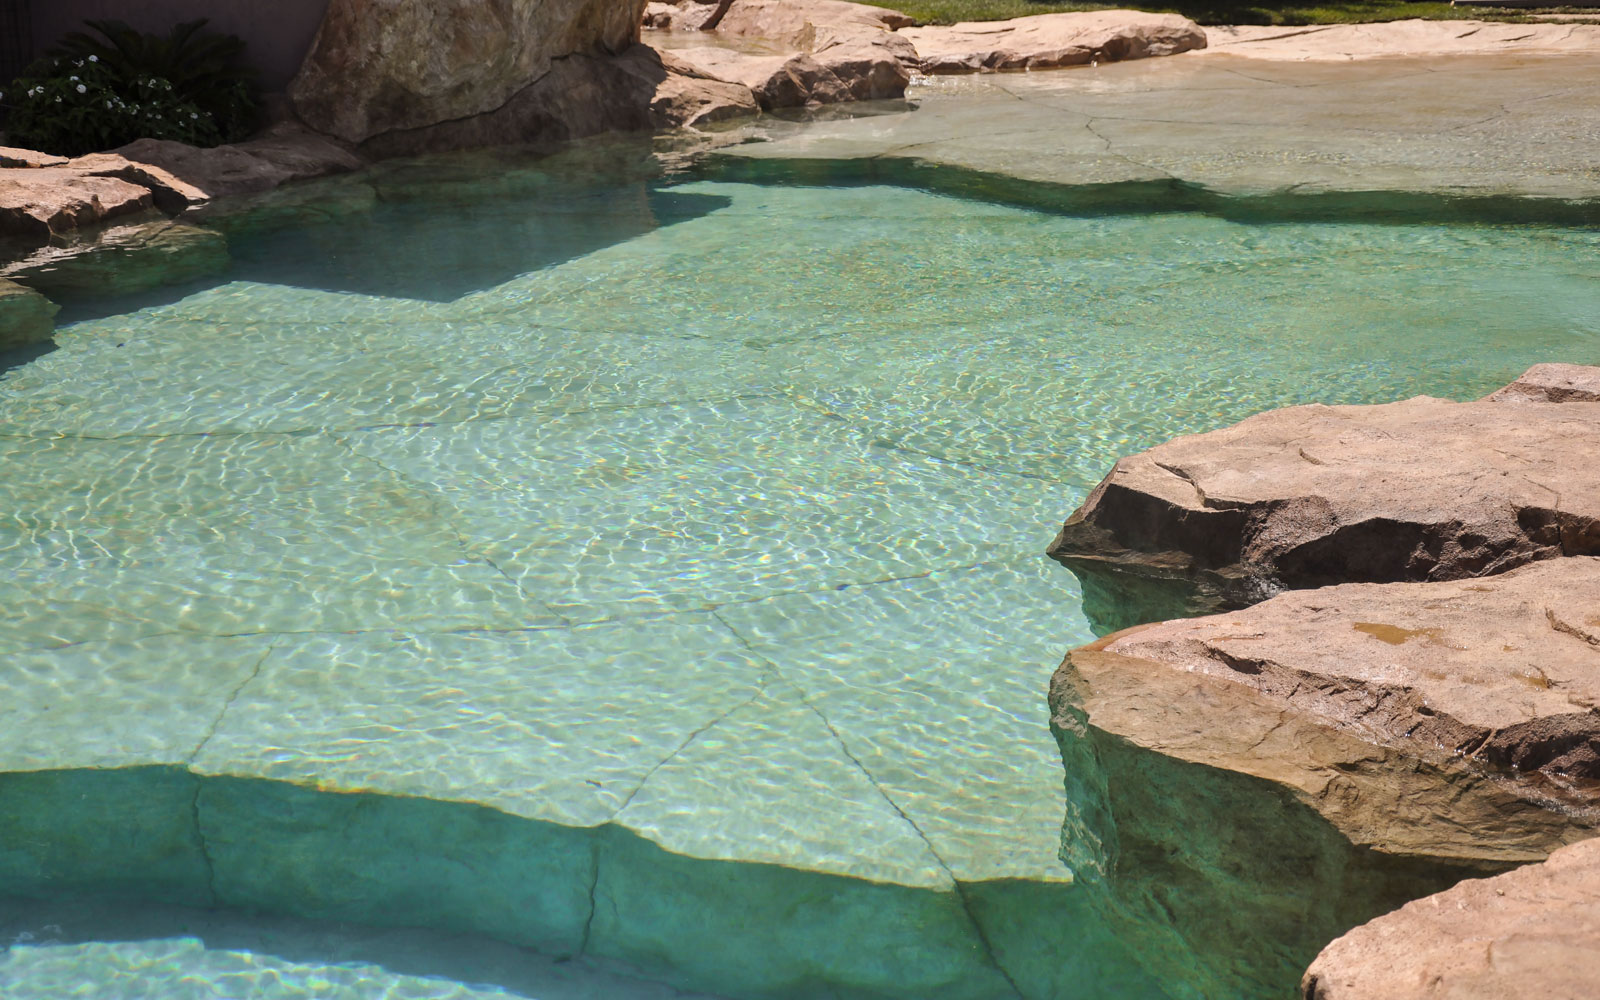 Nos r alisations piscines cascades rochers bassins for Bassin tampon piscine